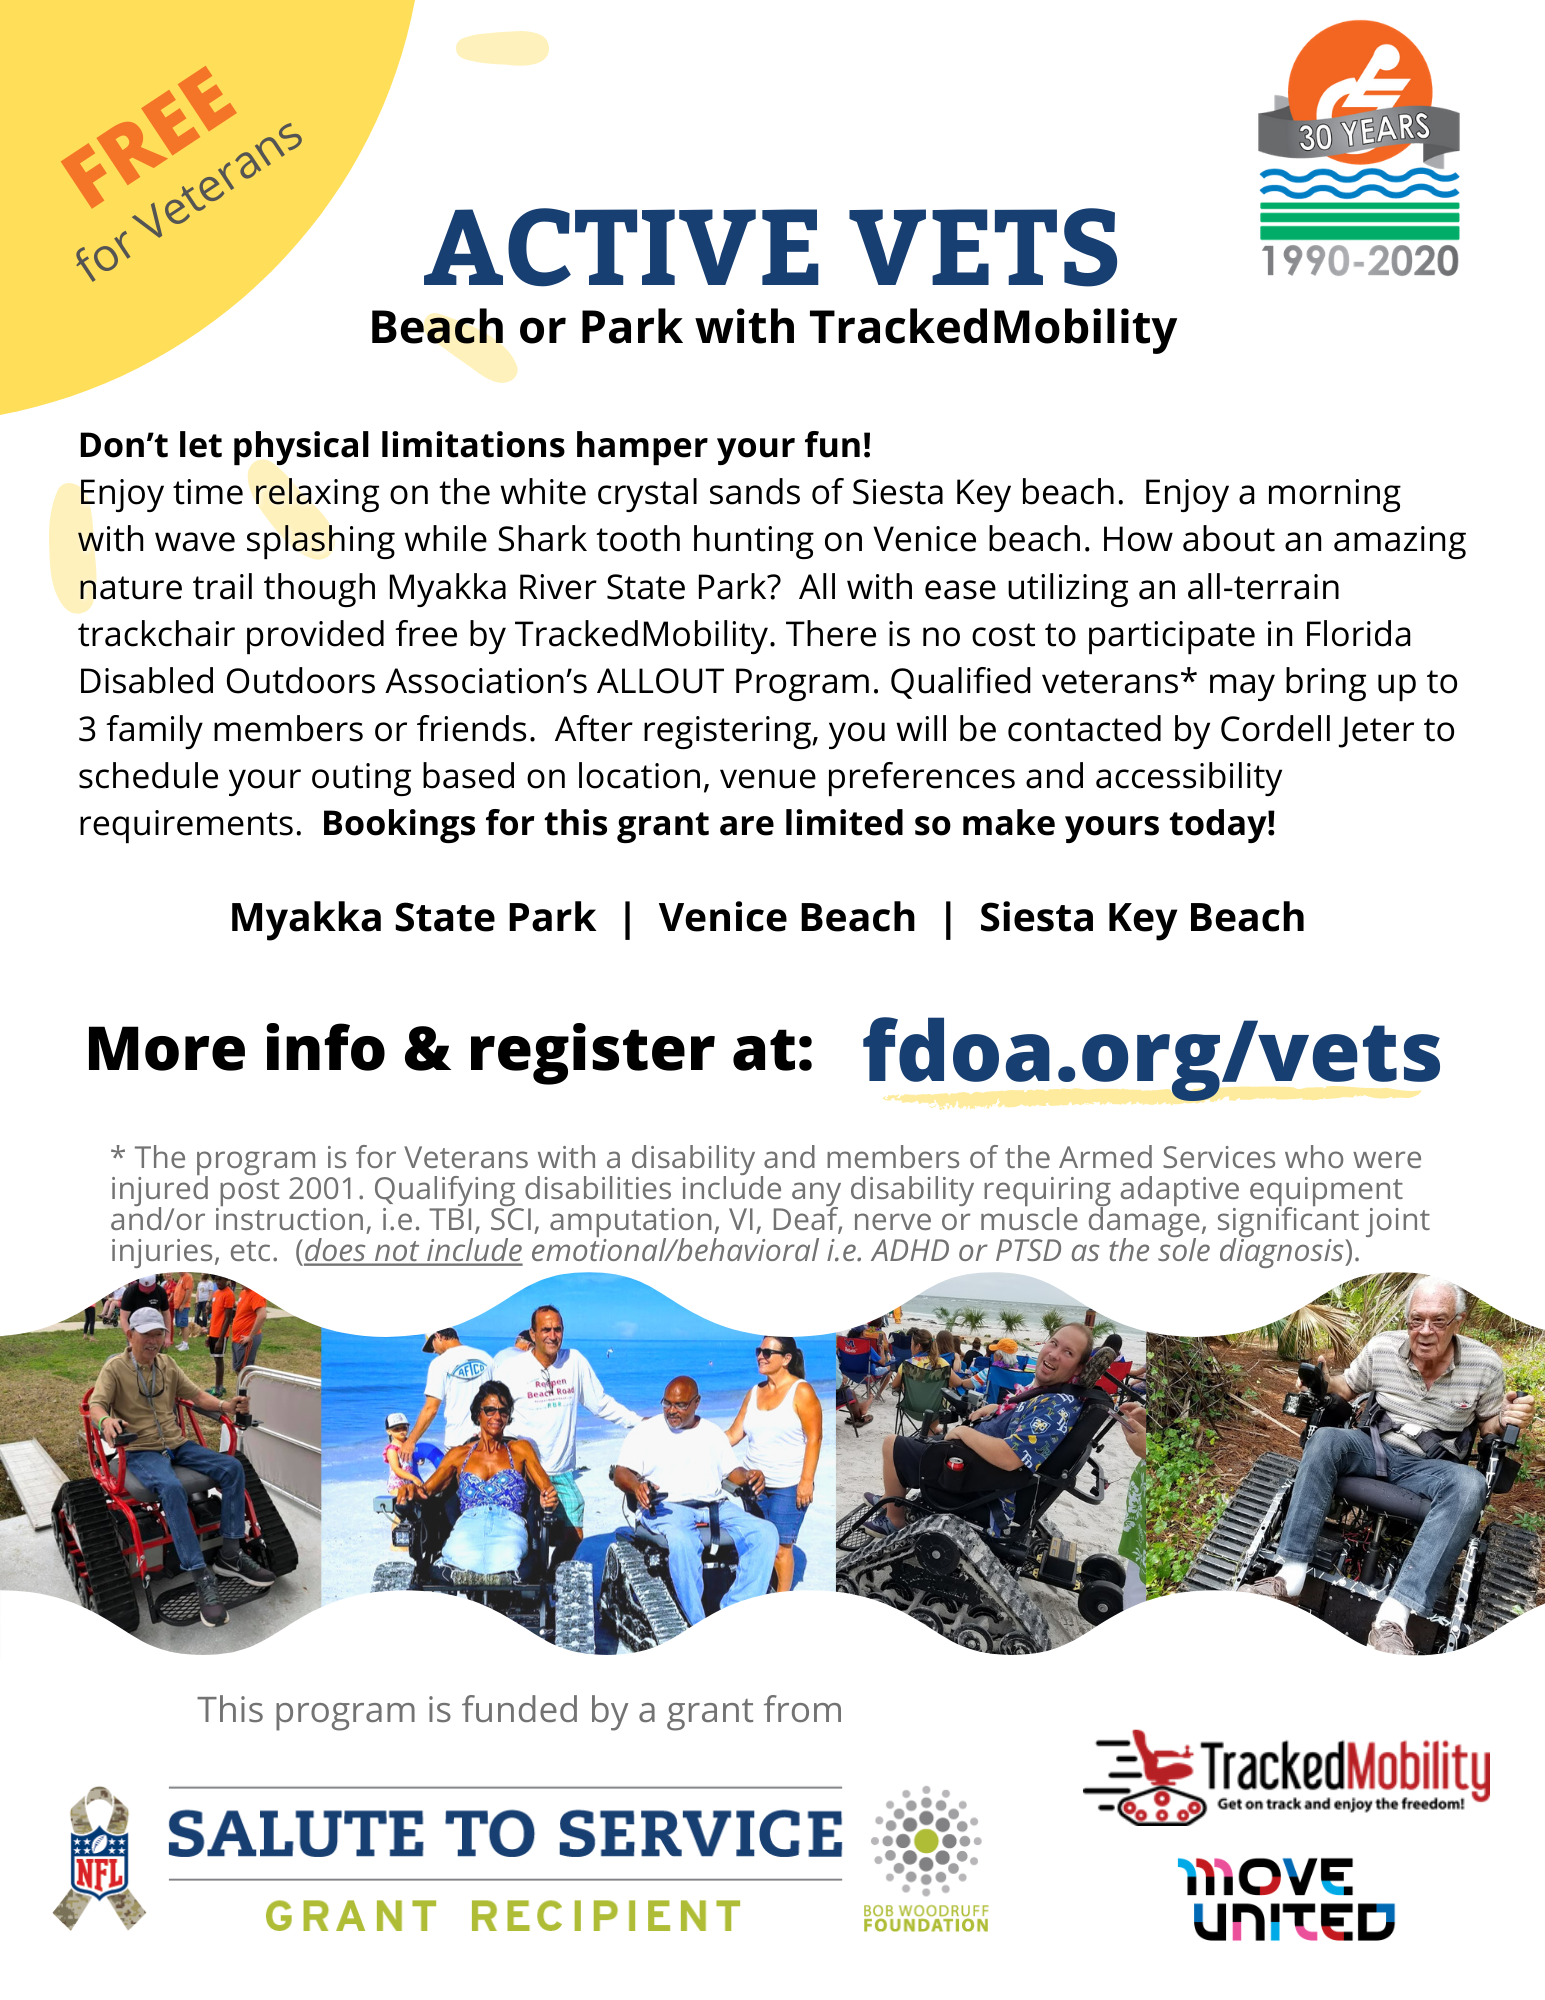 image of Active Vets - Beach and Park Adventure with TrackedMobility